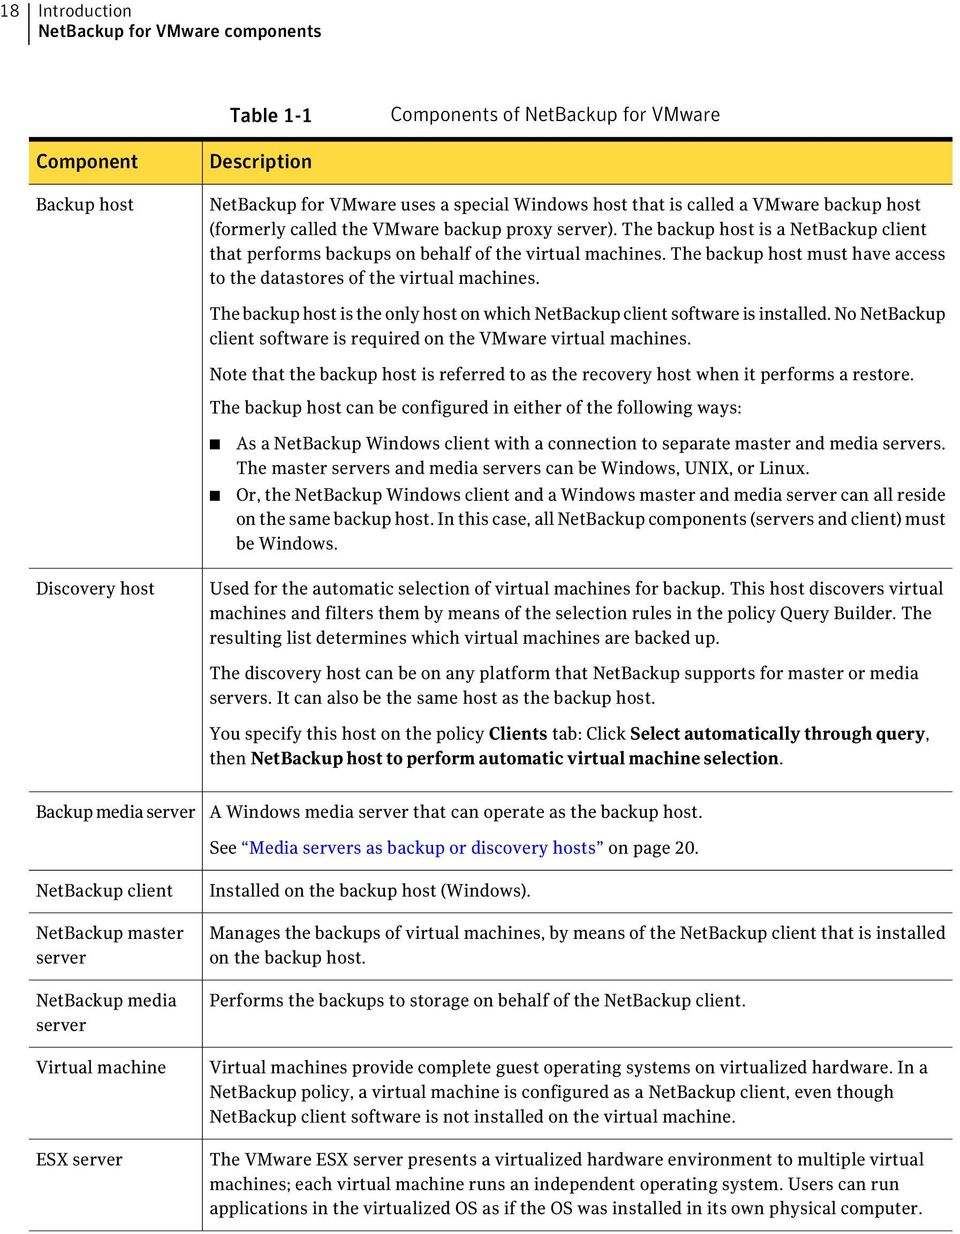 The backup host must have access to the datastores of the virtual machines. The backup host is the only host on which NetBackup client software is installed.